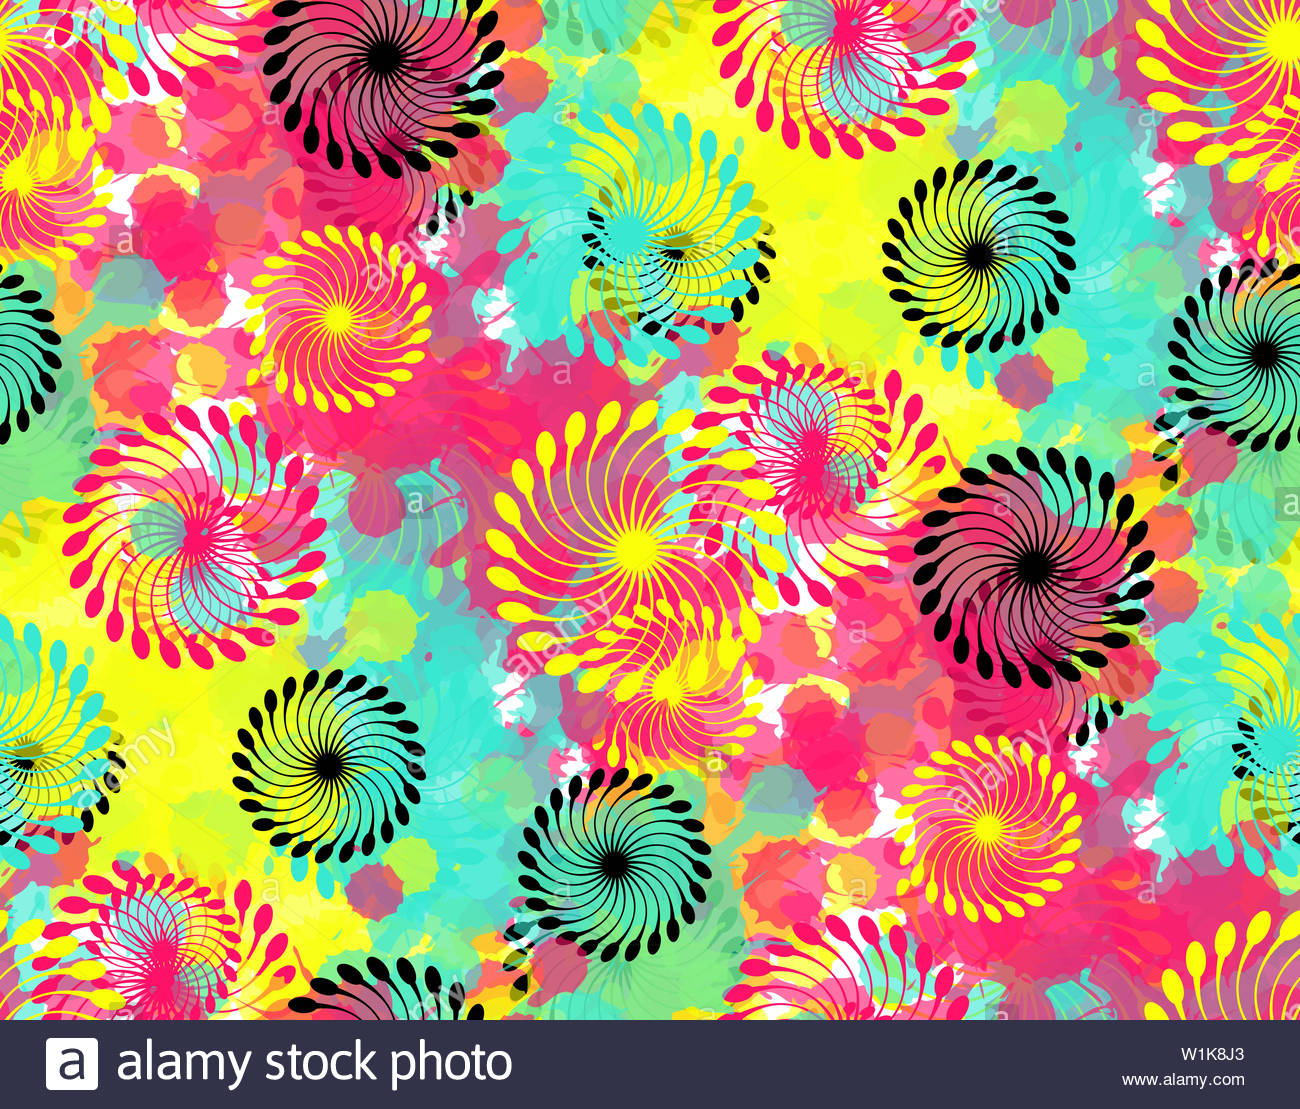 Abstract Floral Wallpaper Pattern With Helix Flowers In Multicolor